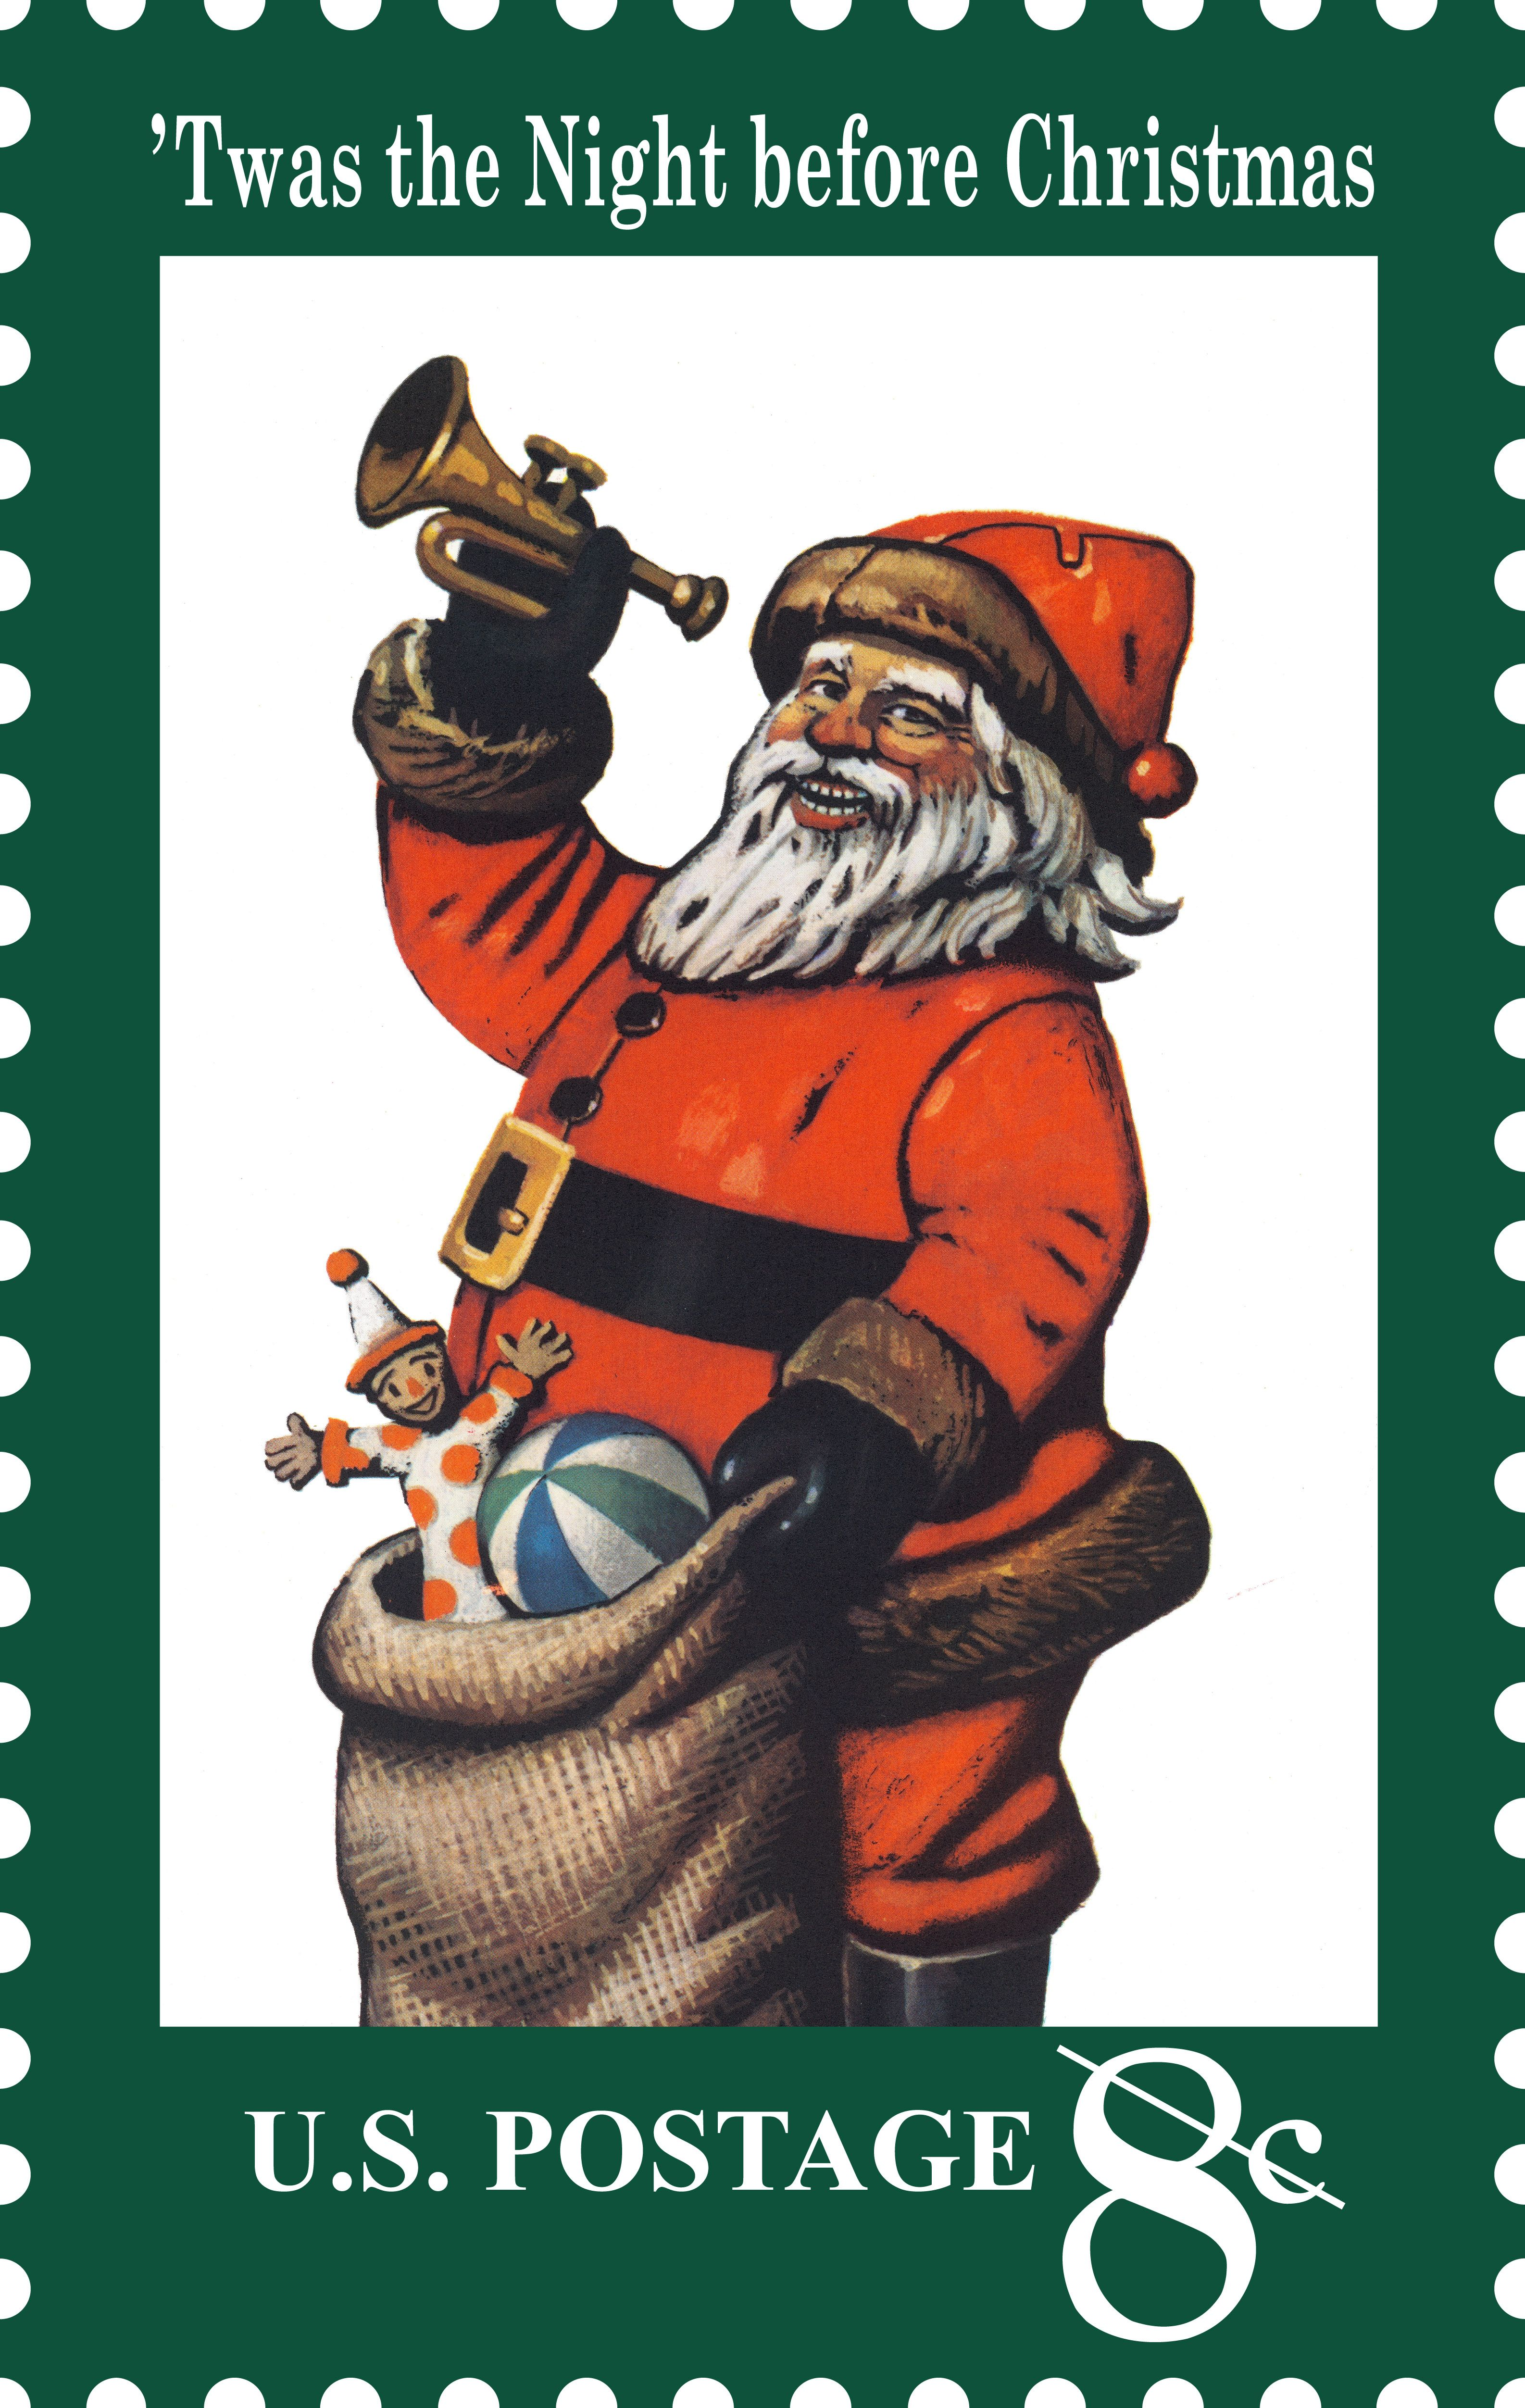 Santa Claus first appeared on a U.S. postage stamp in 1972